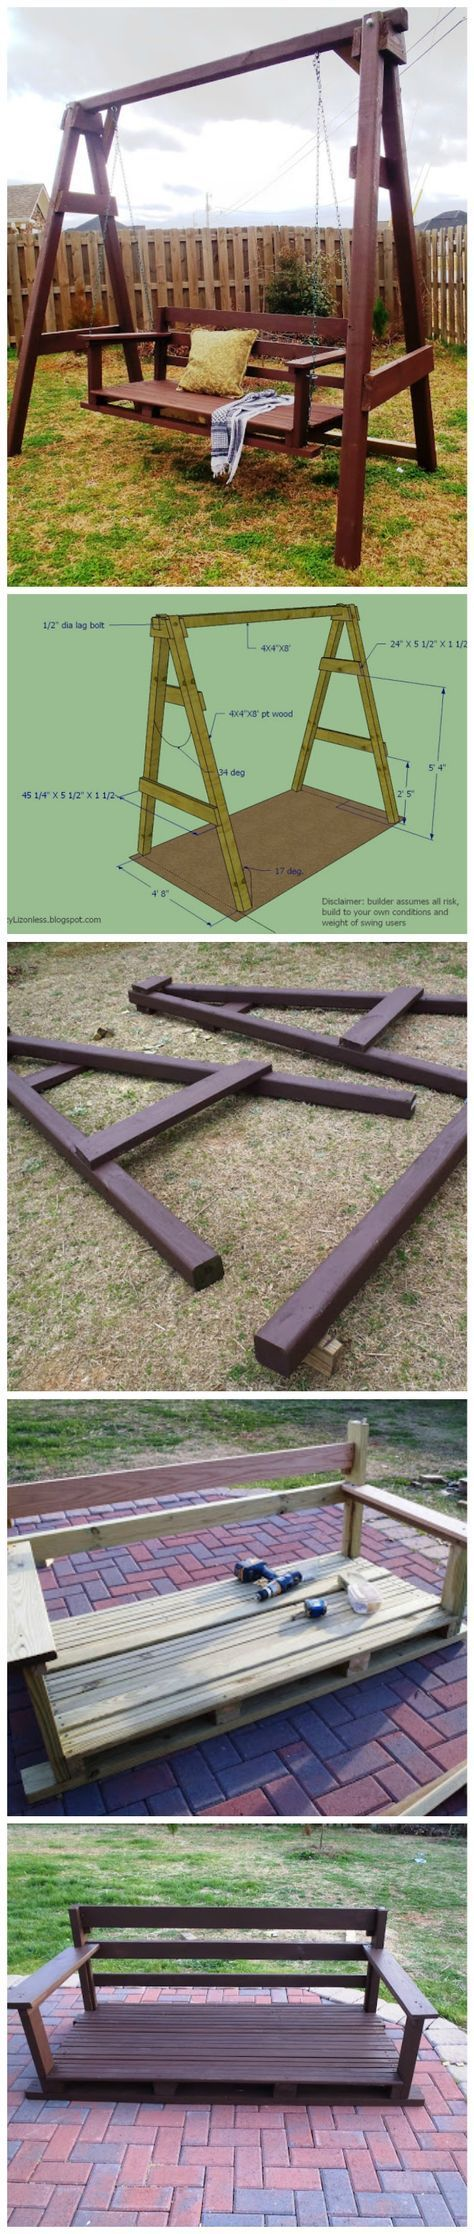 how to build a backyard swing set building projects pinterest